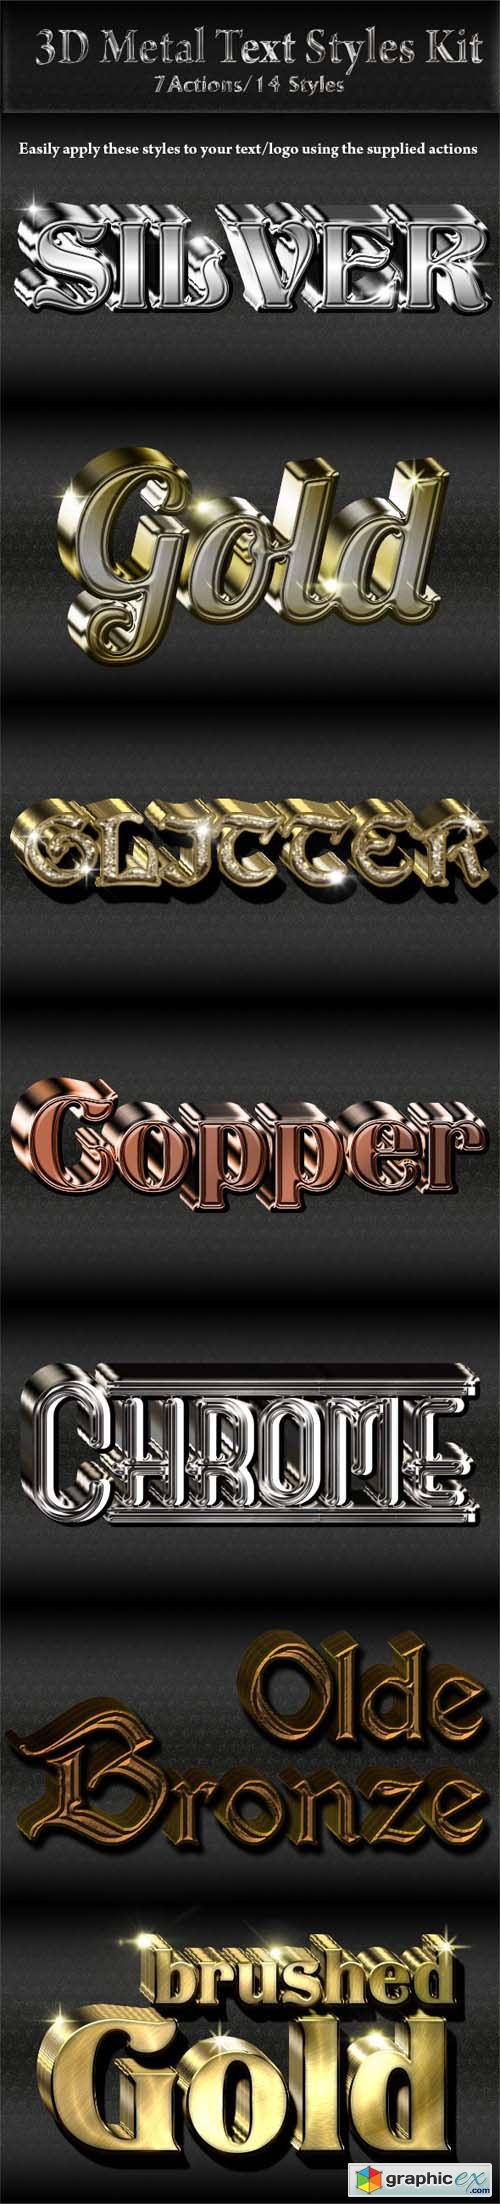 3D Metal Text/Logo Styles Kit 9410770